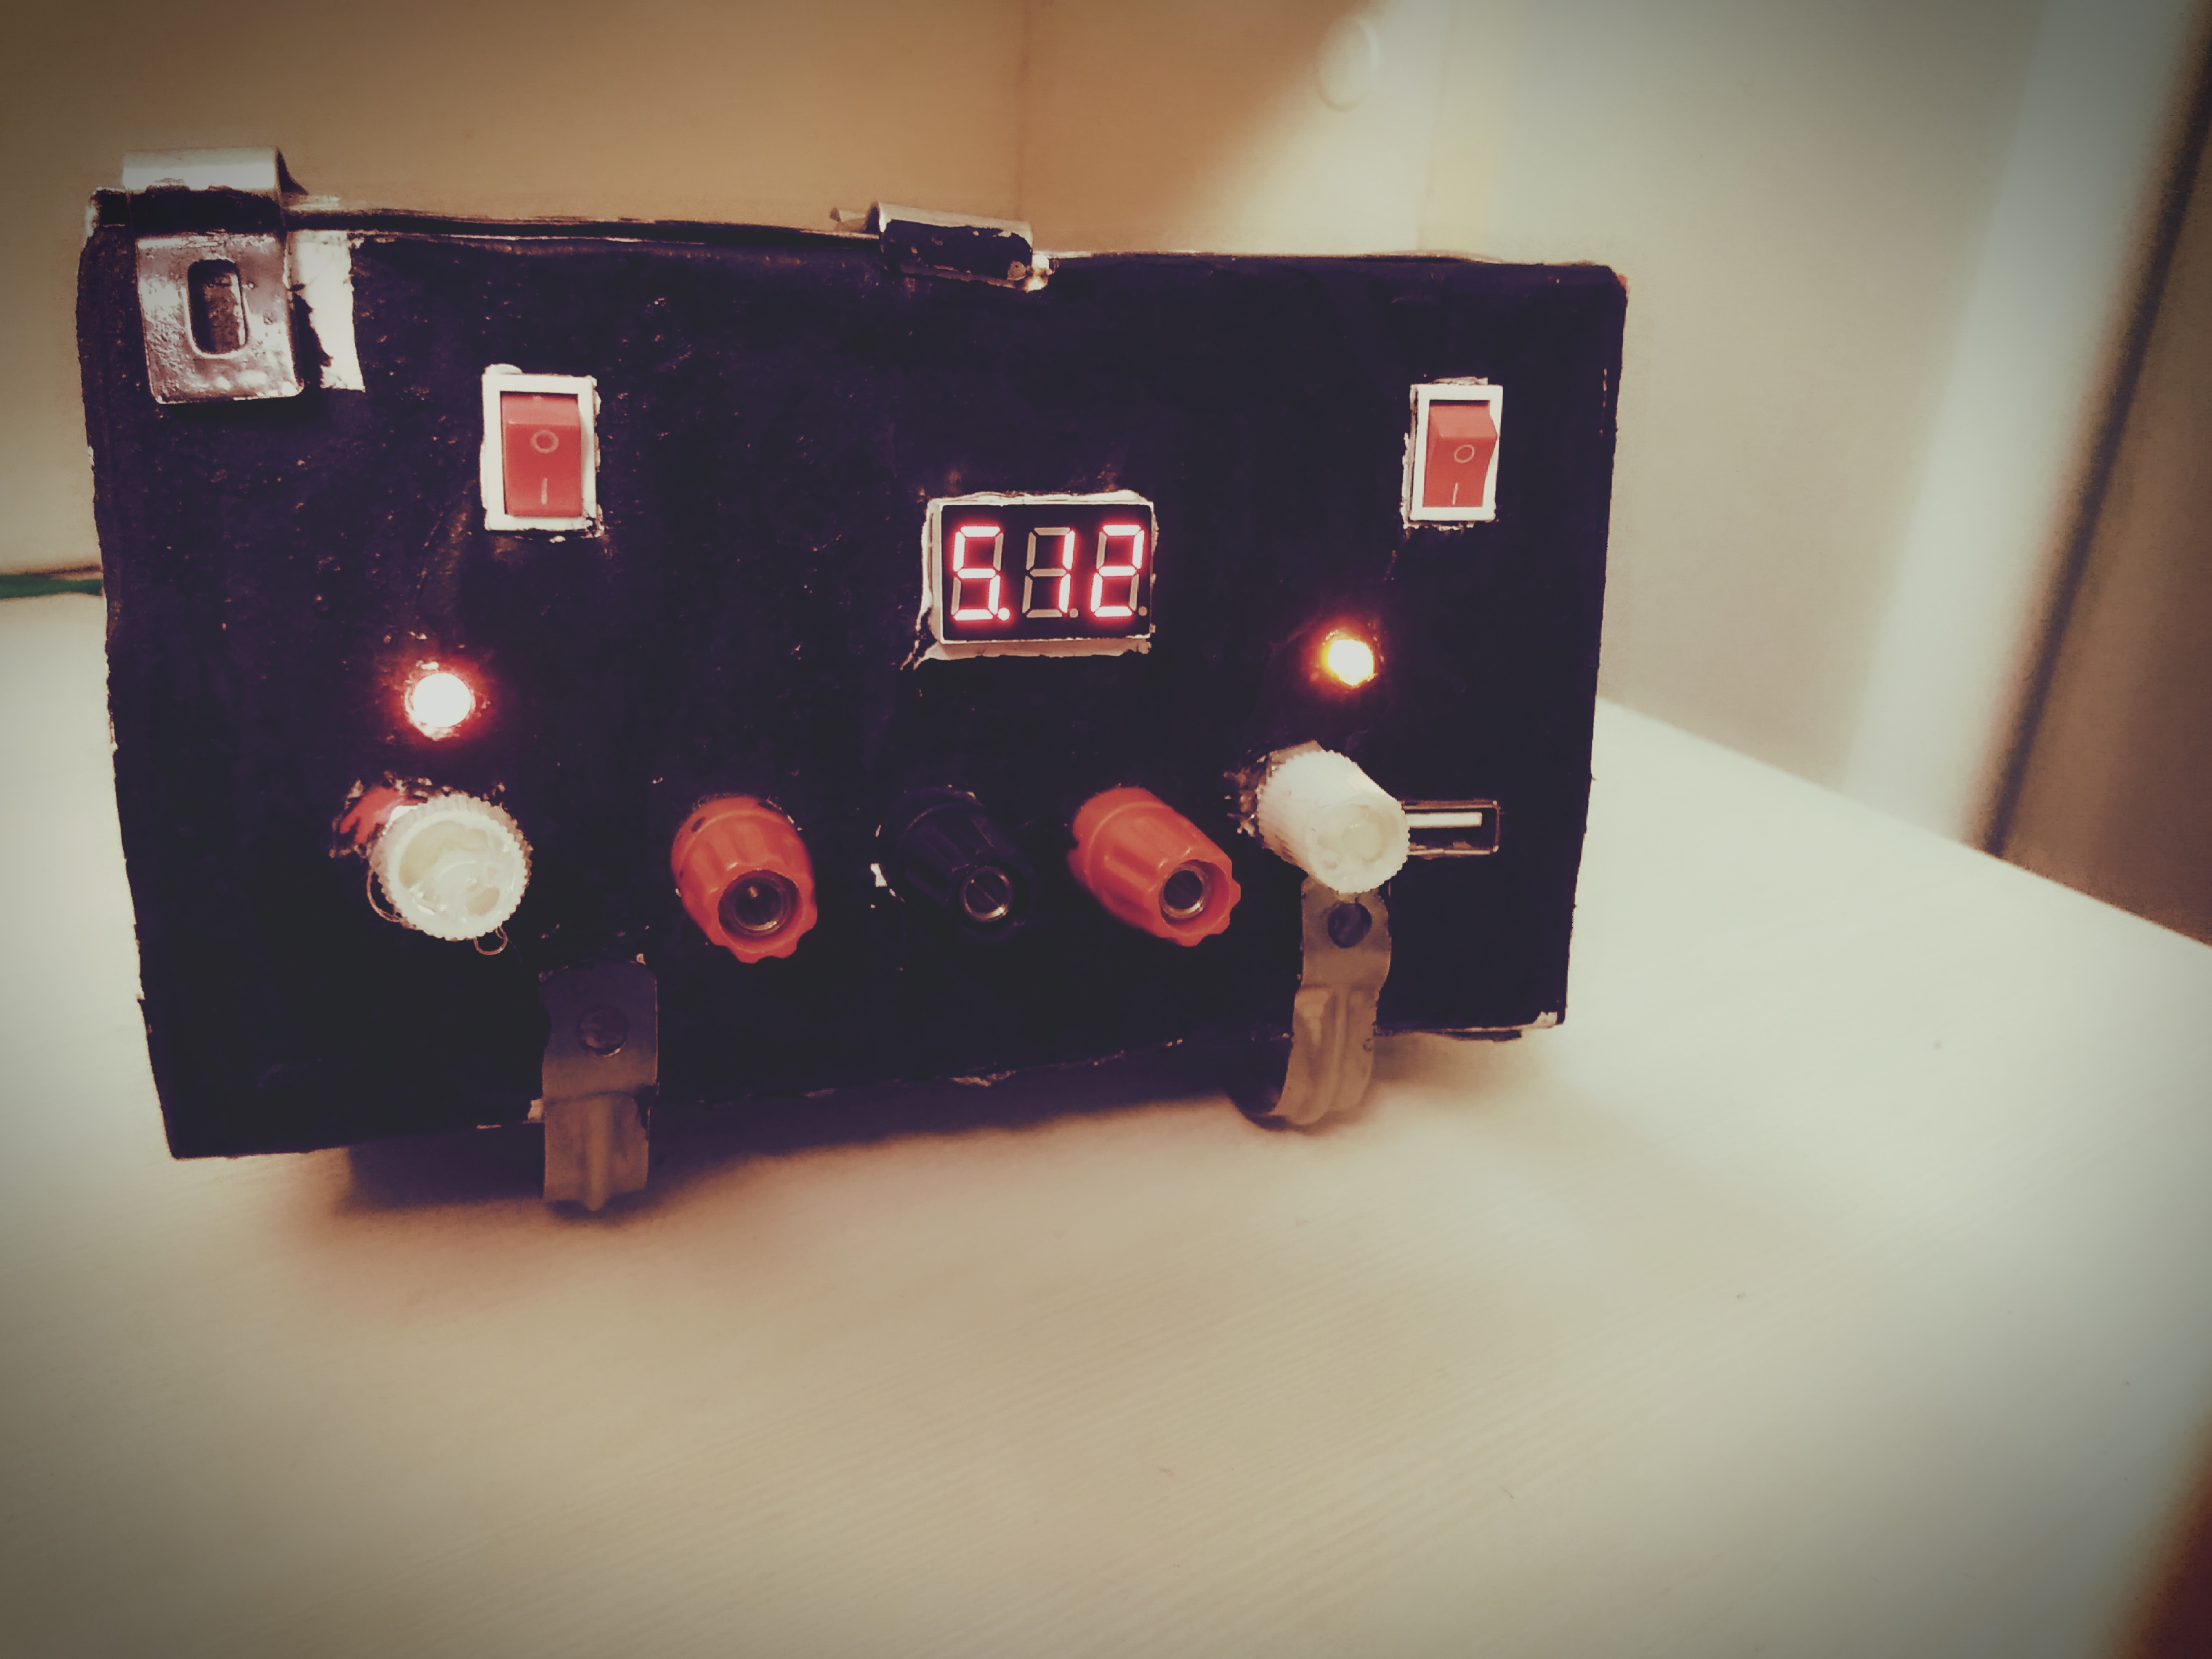 Picture of Advanced Adjustable Dual Mode DC Voltage Regulator